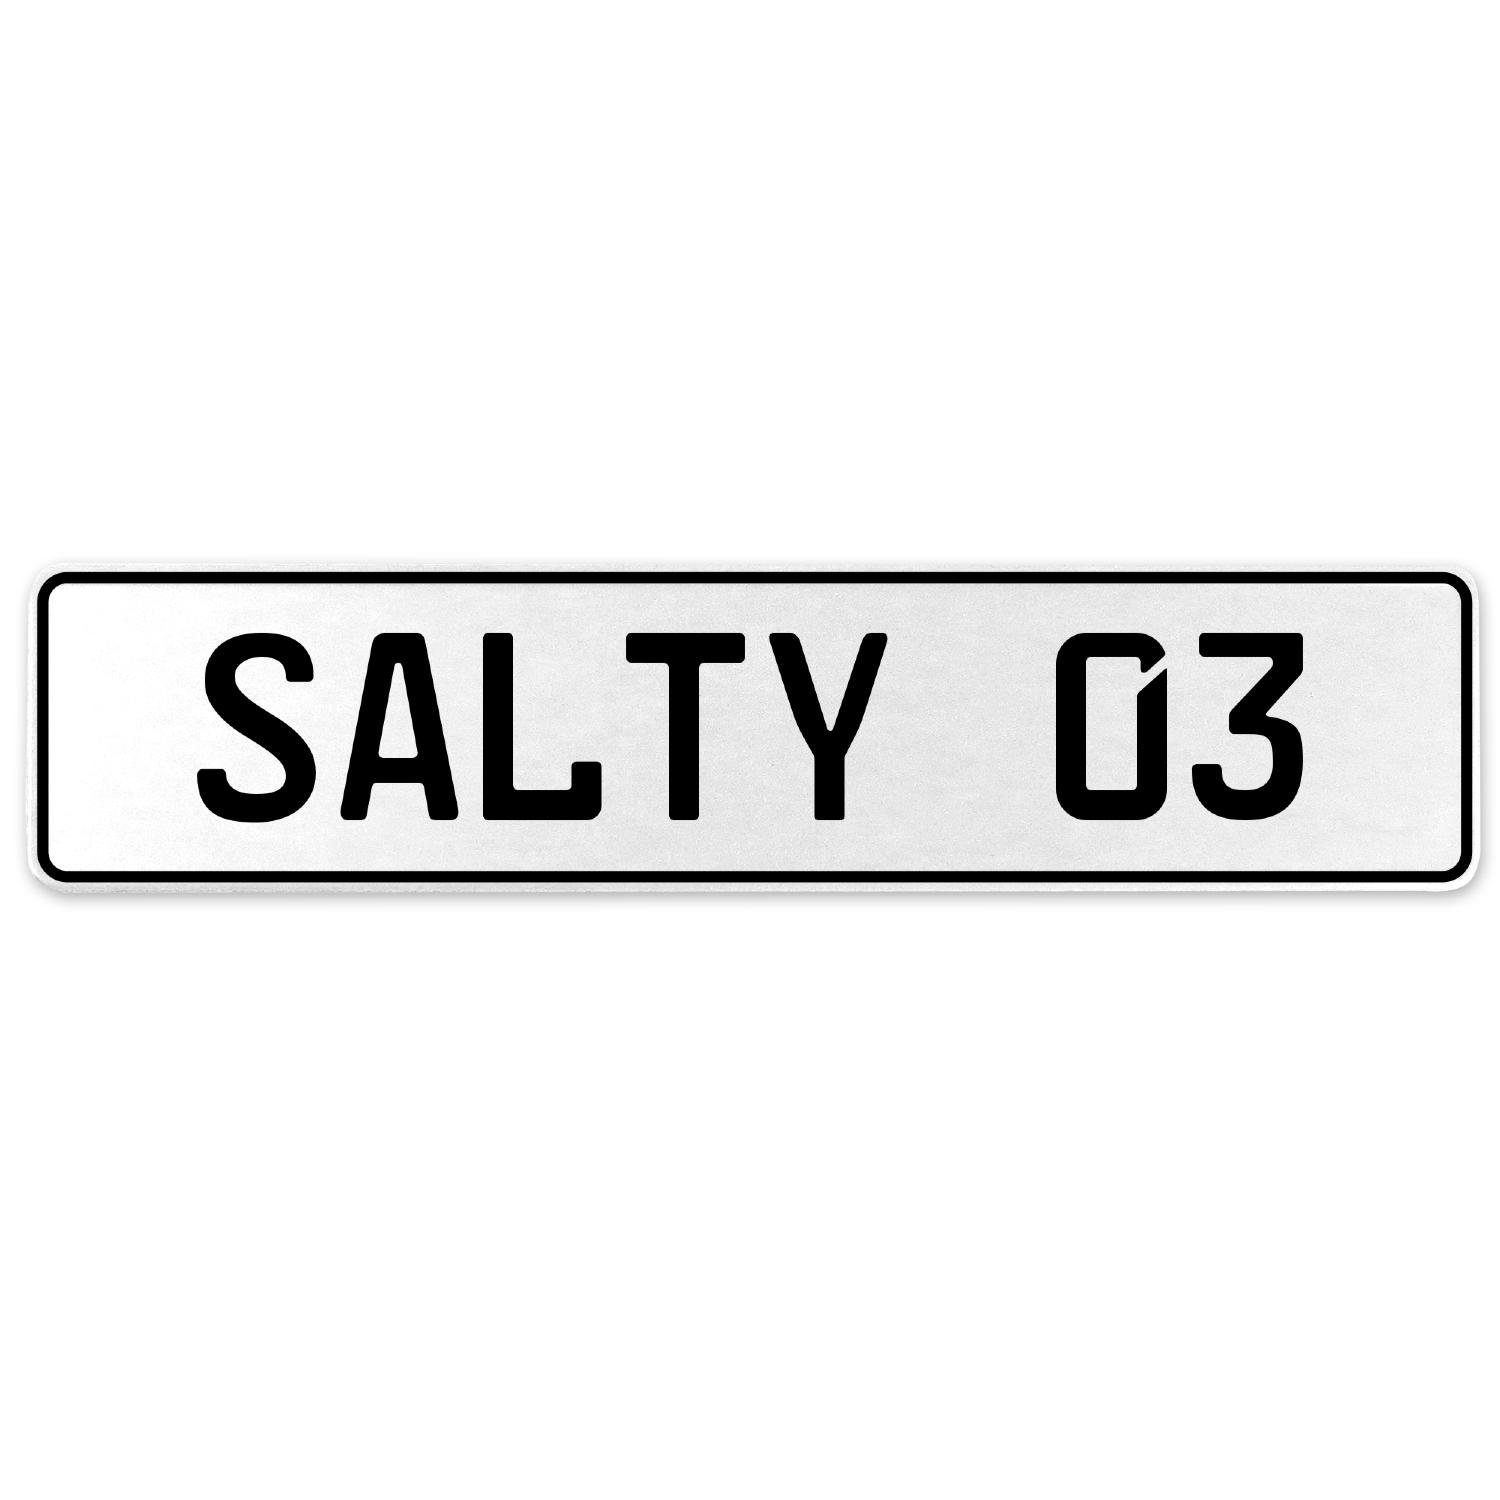 Vintage Parts 556679 Salty 03 White Stamped Aluminum European License Plate